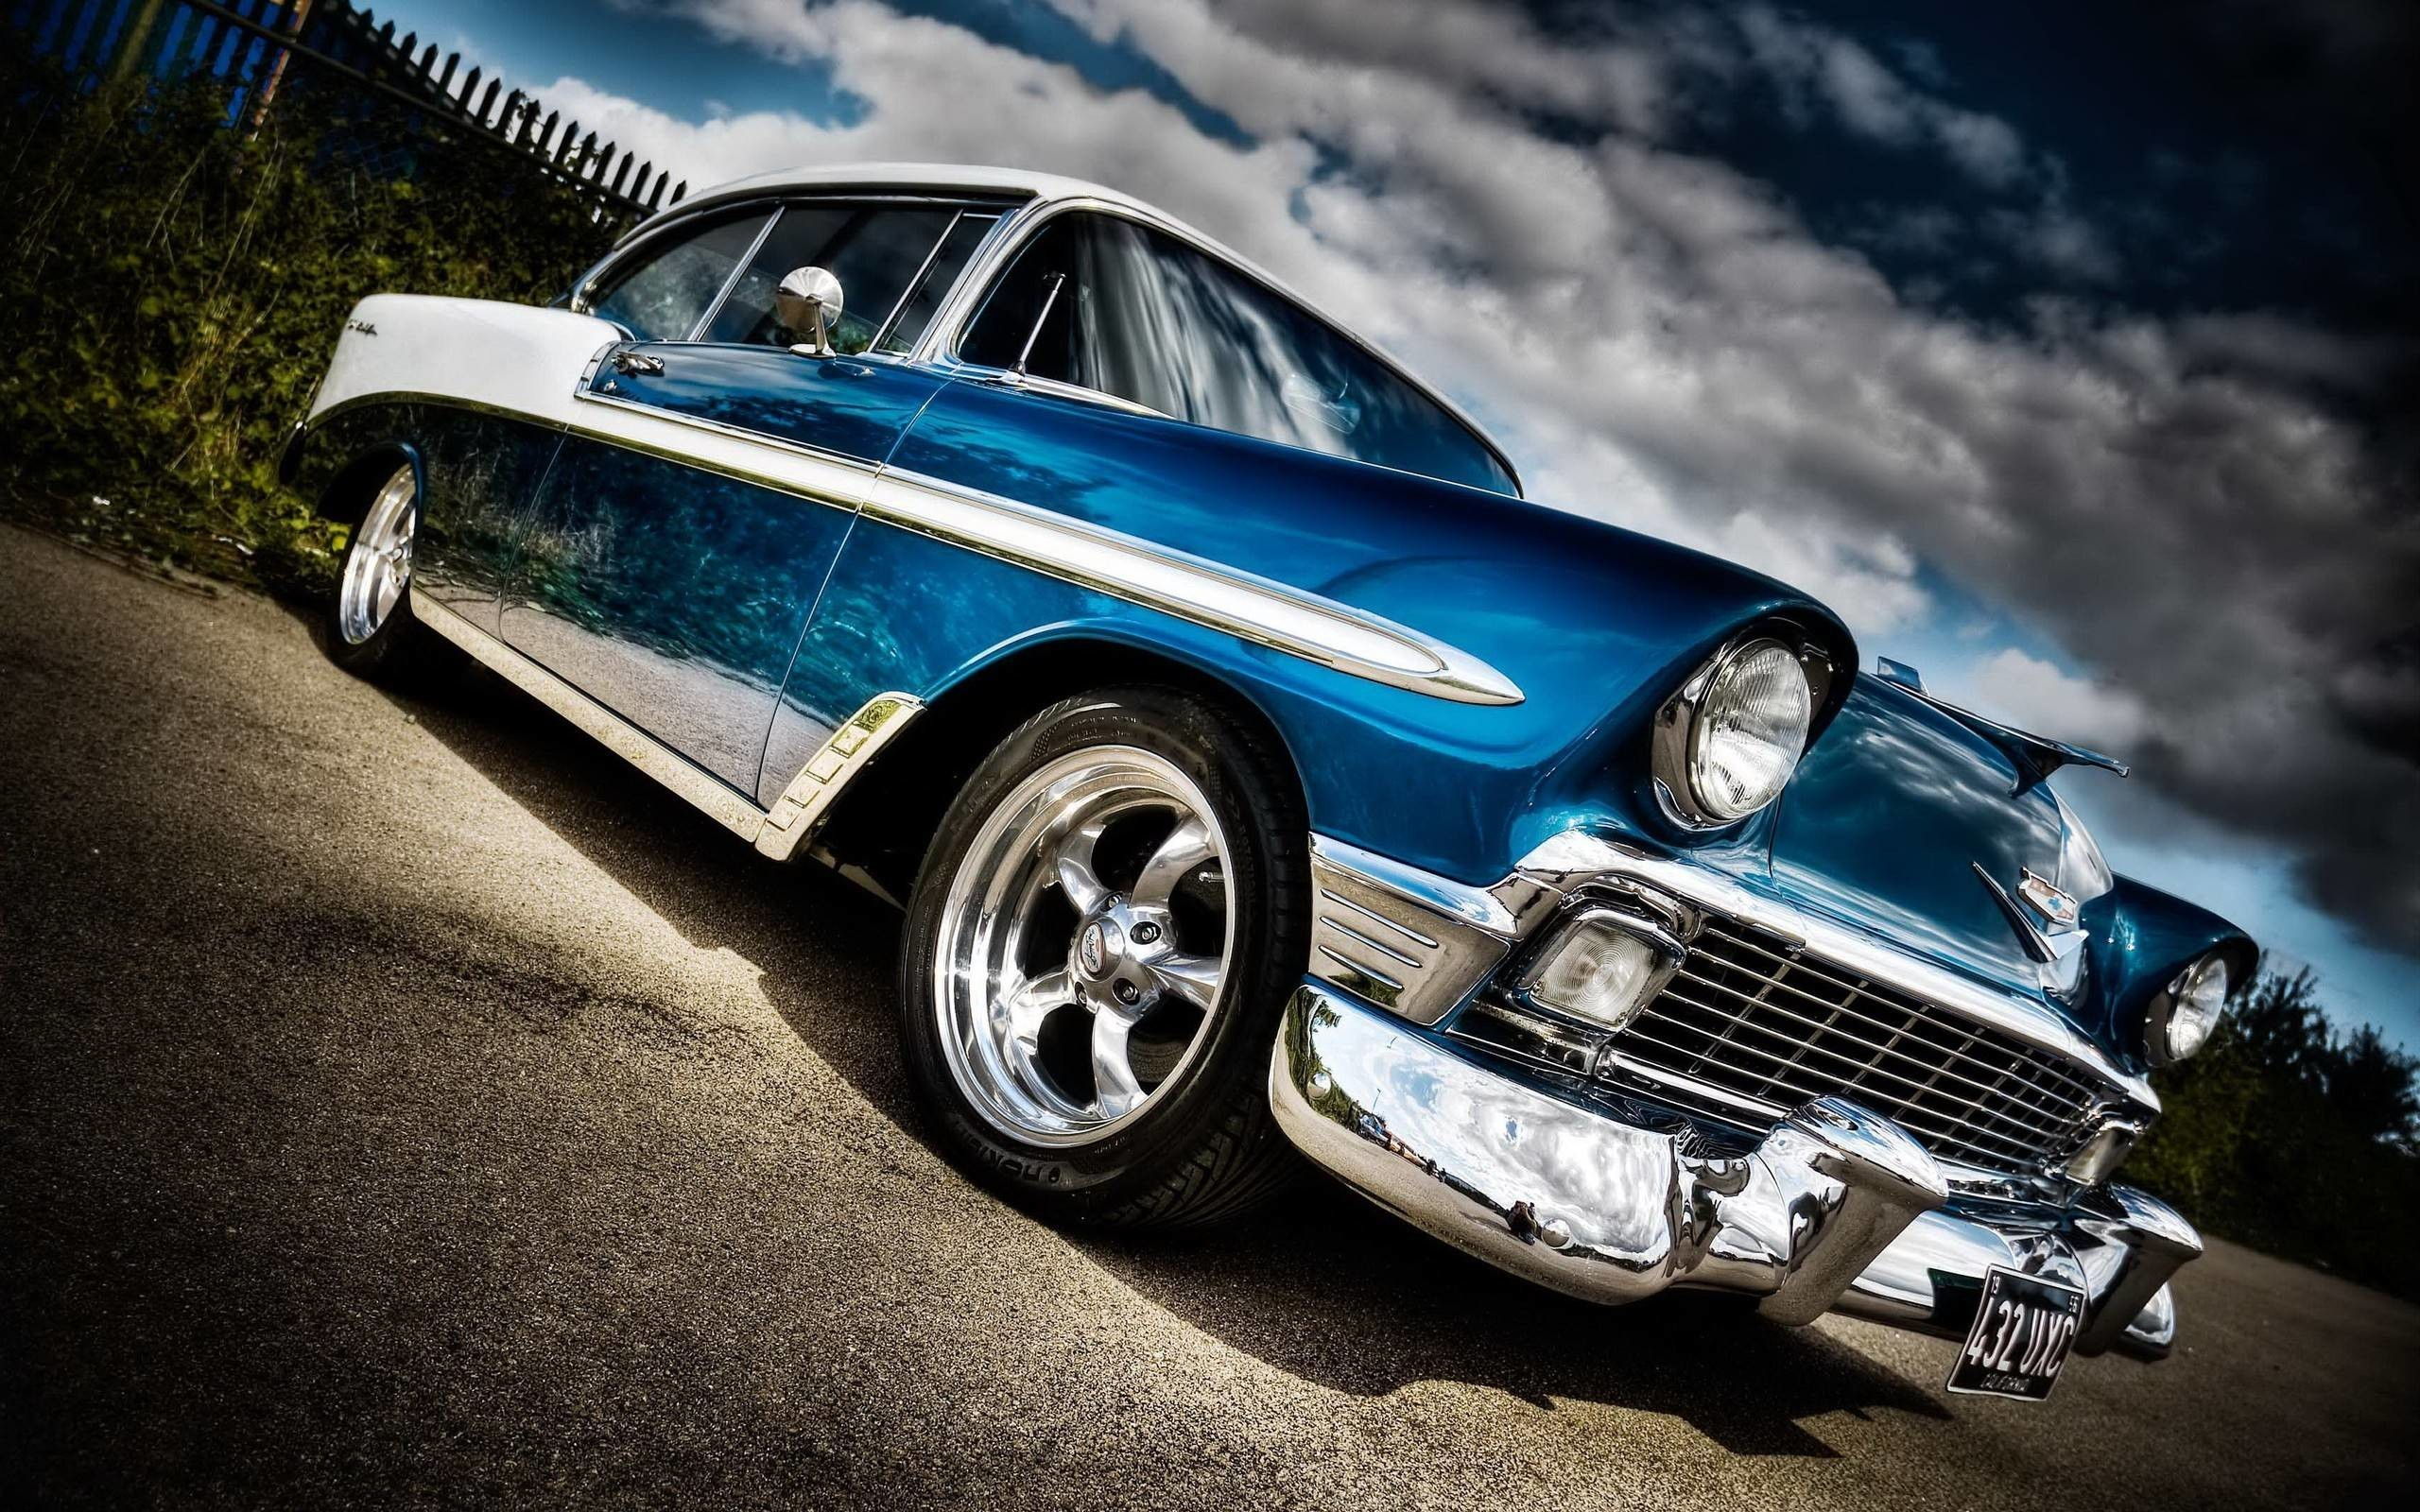 Res: 2560x1600, Classic Car Wallpaper For Android